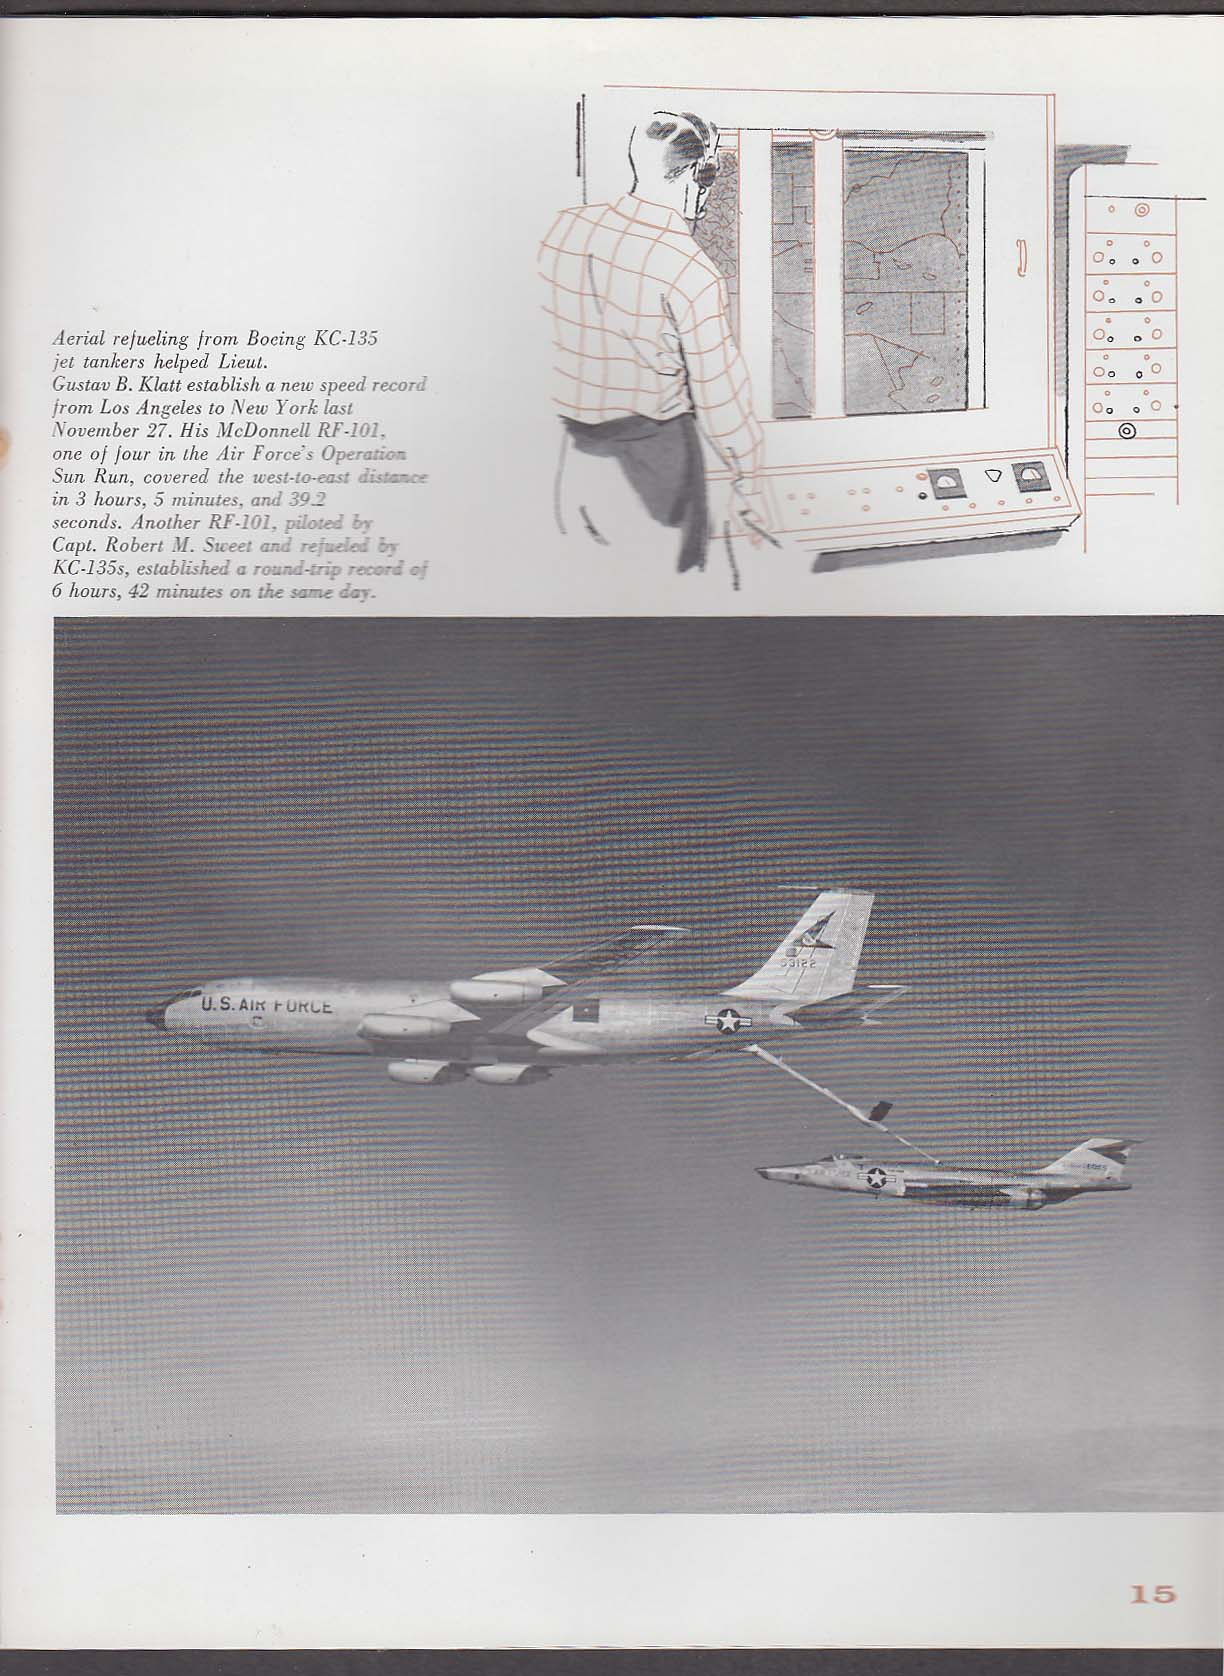 United Aircraft Corporation Pictorial Report 1958